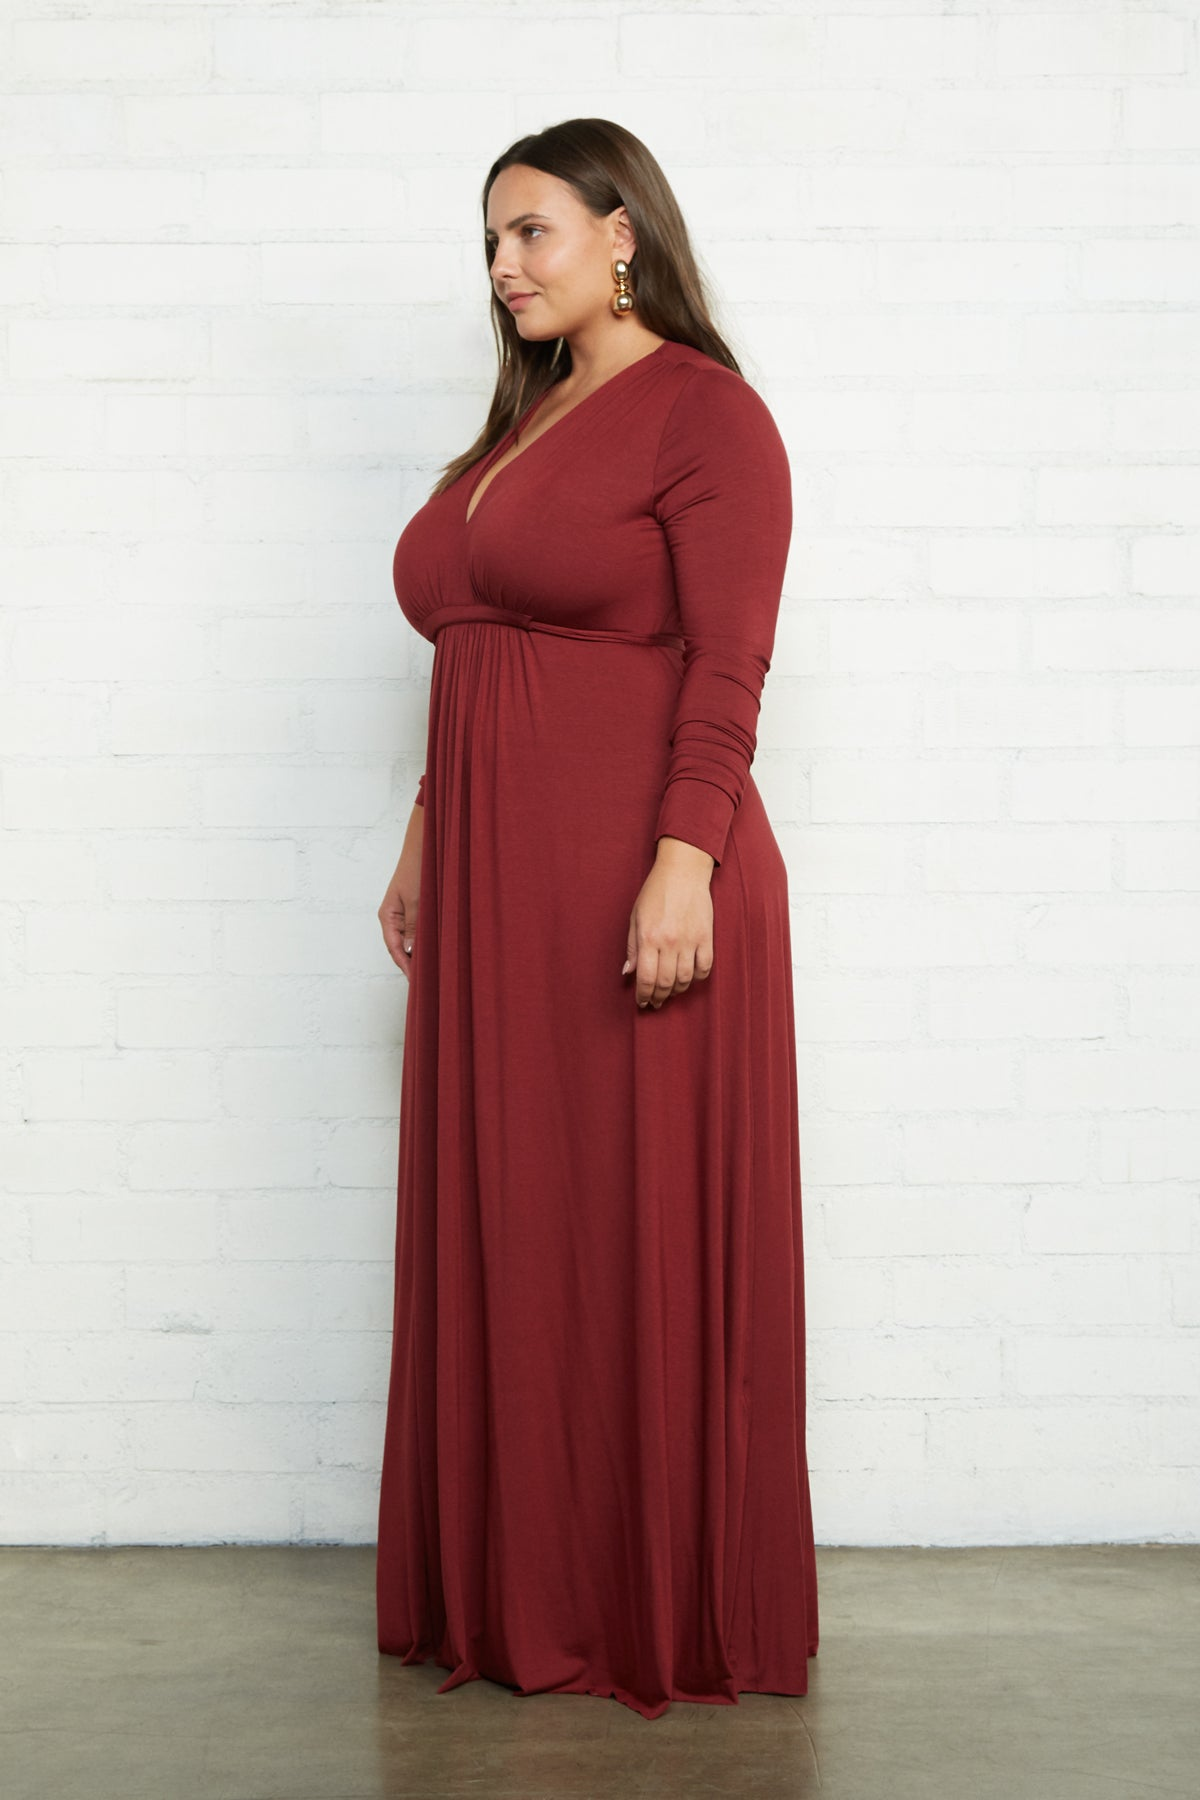 Long Sleeve Full Length Caftan Dress - Gamay, Plus Size